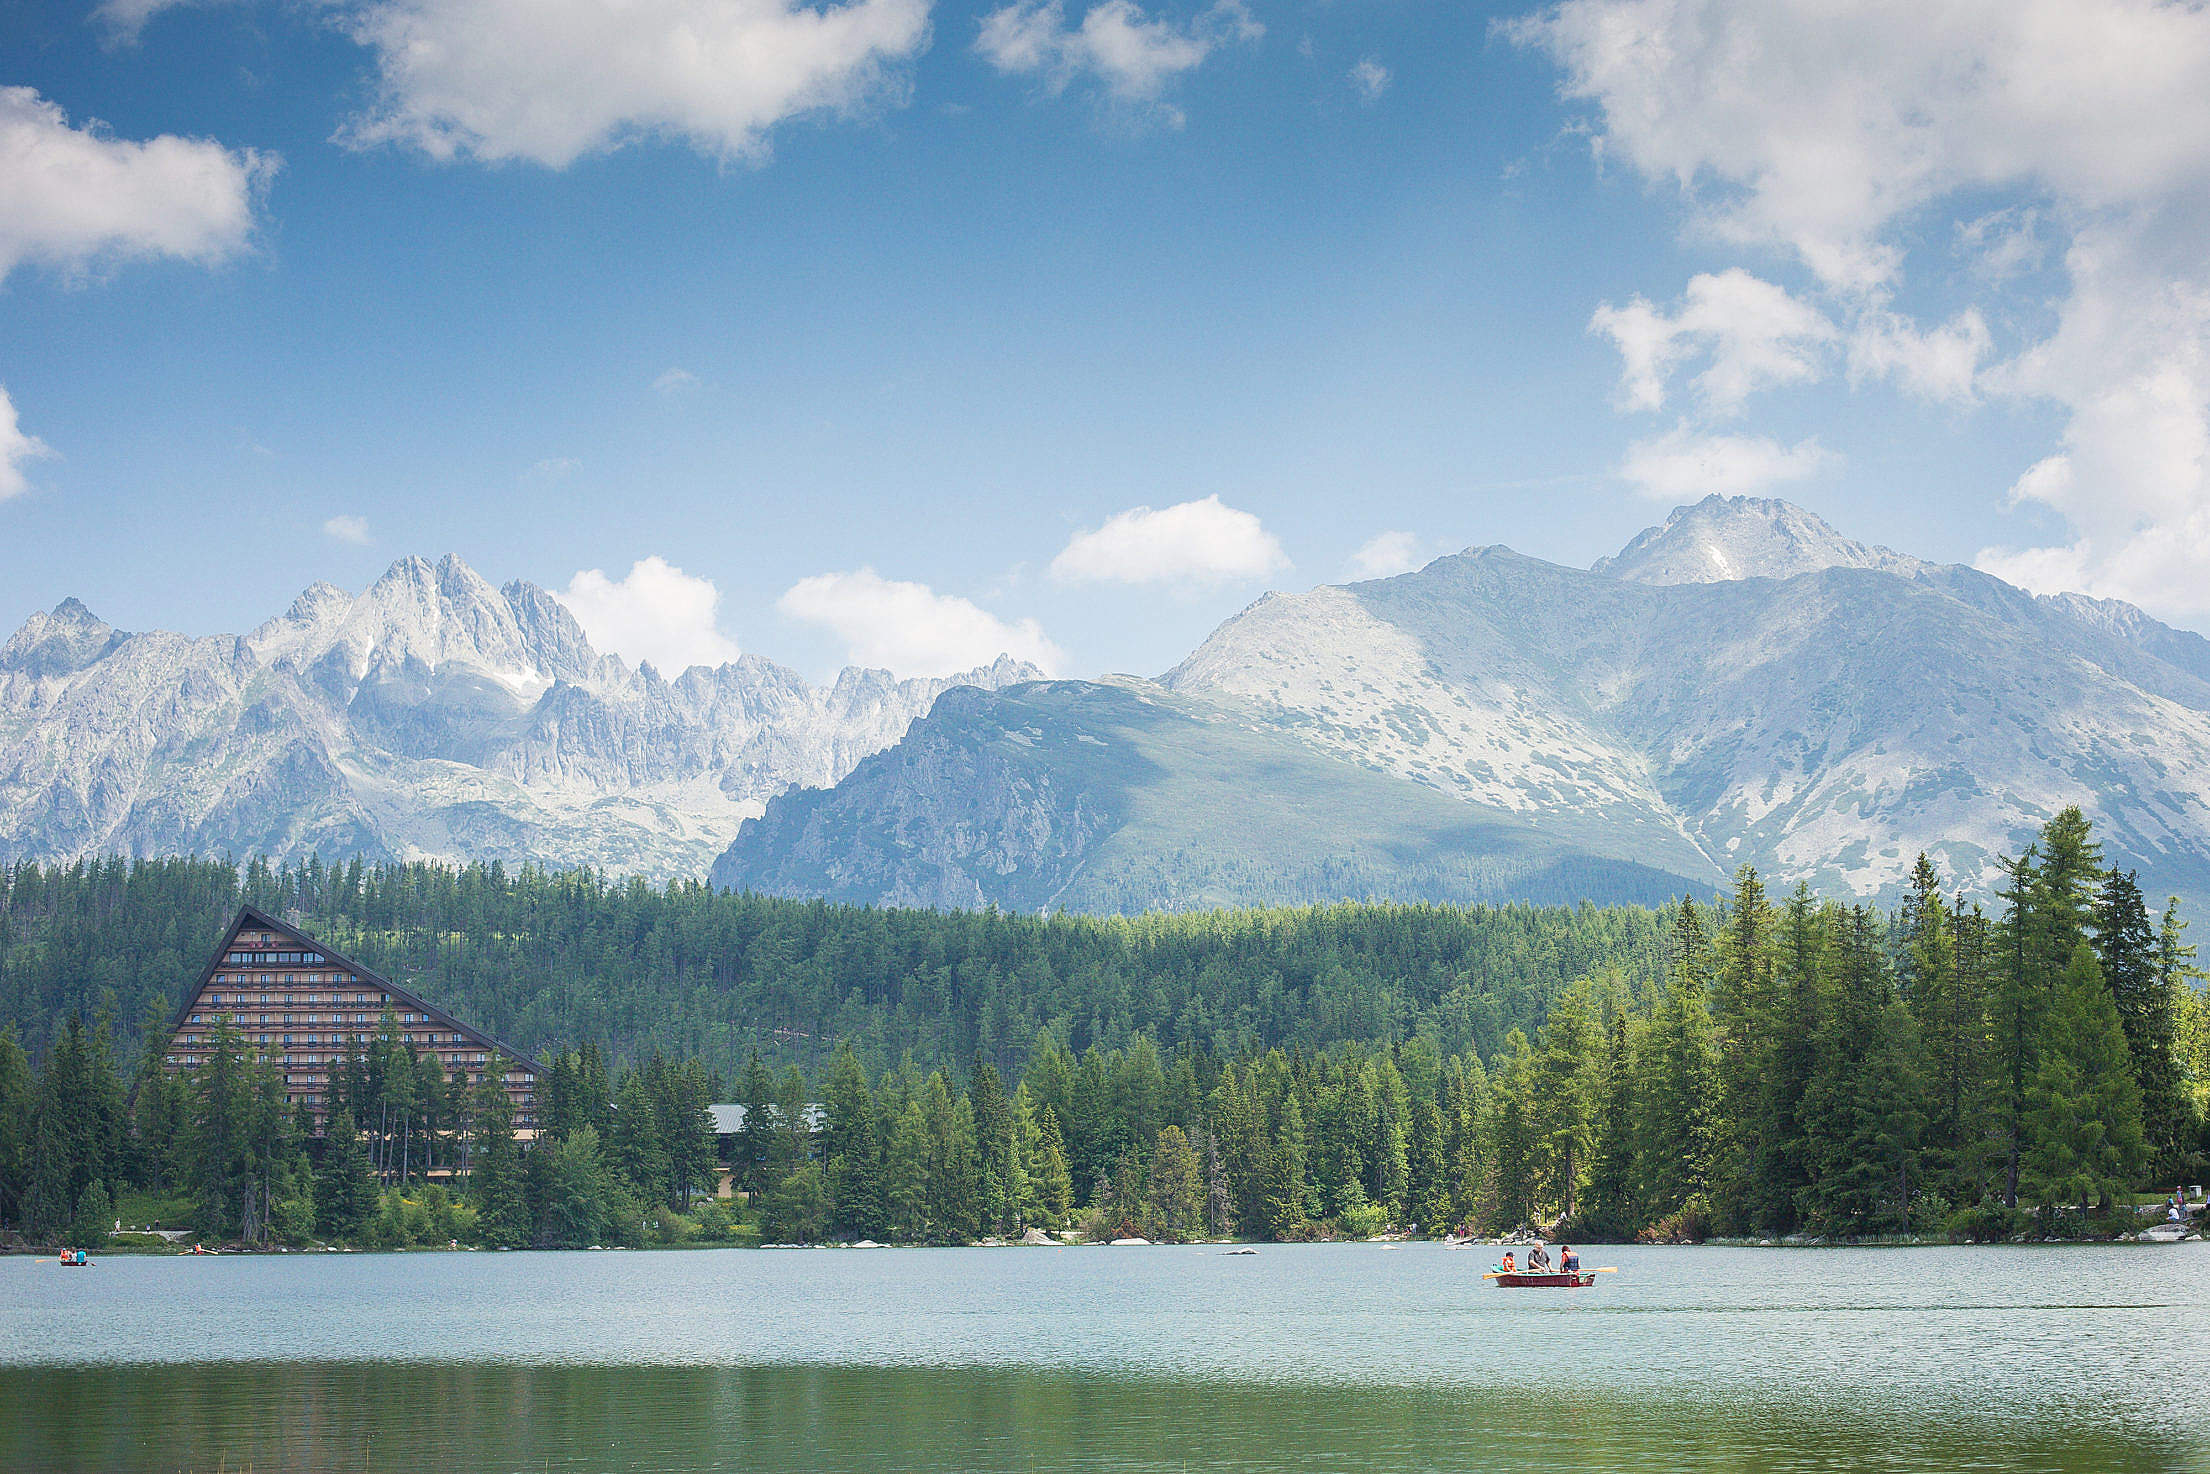 High Tatras Mountains Panorama Scenery with Lake and Woods Free Stock Photo